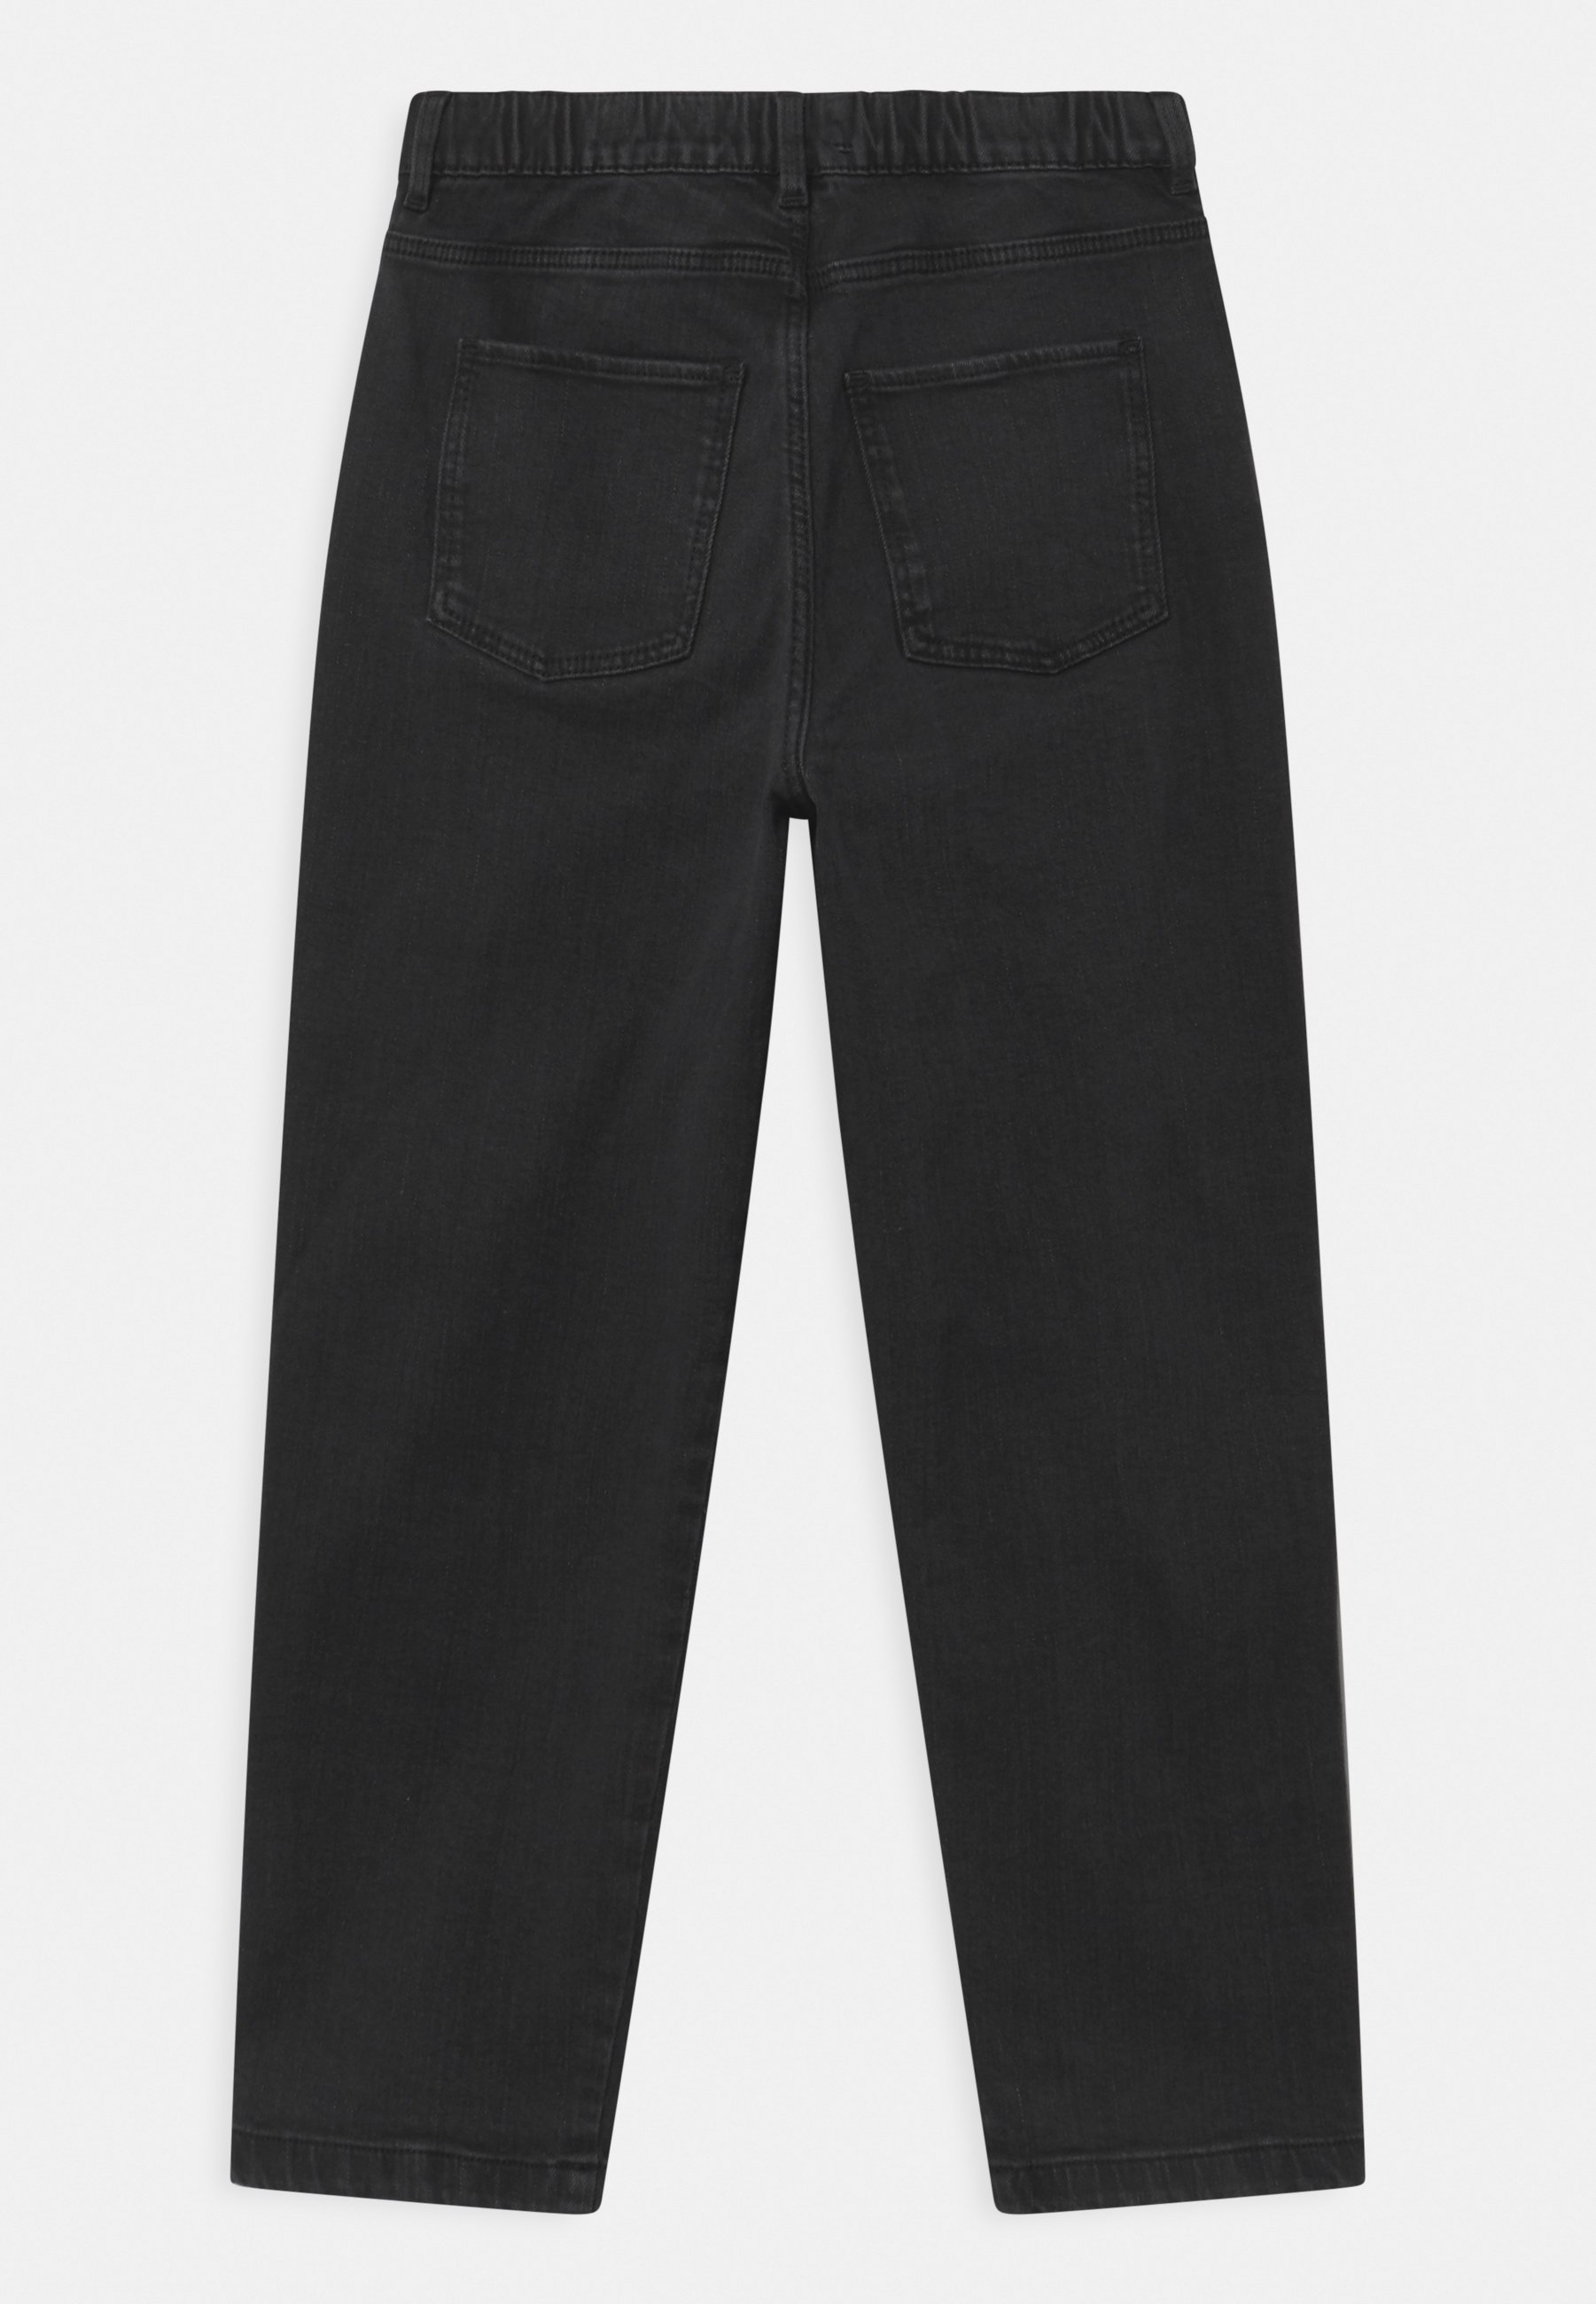 Kids Relaxed fit jeans - grey denim